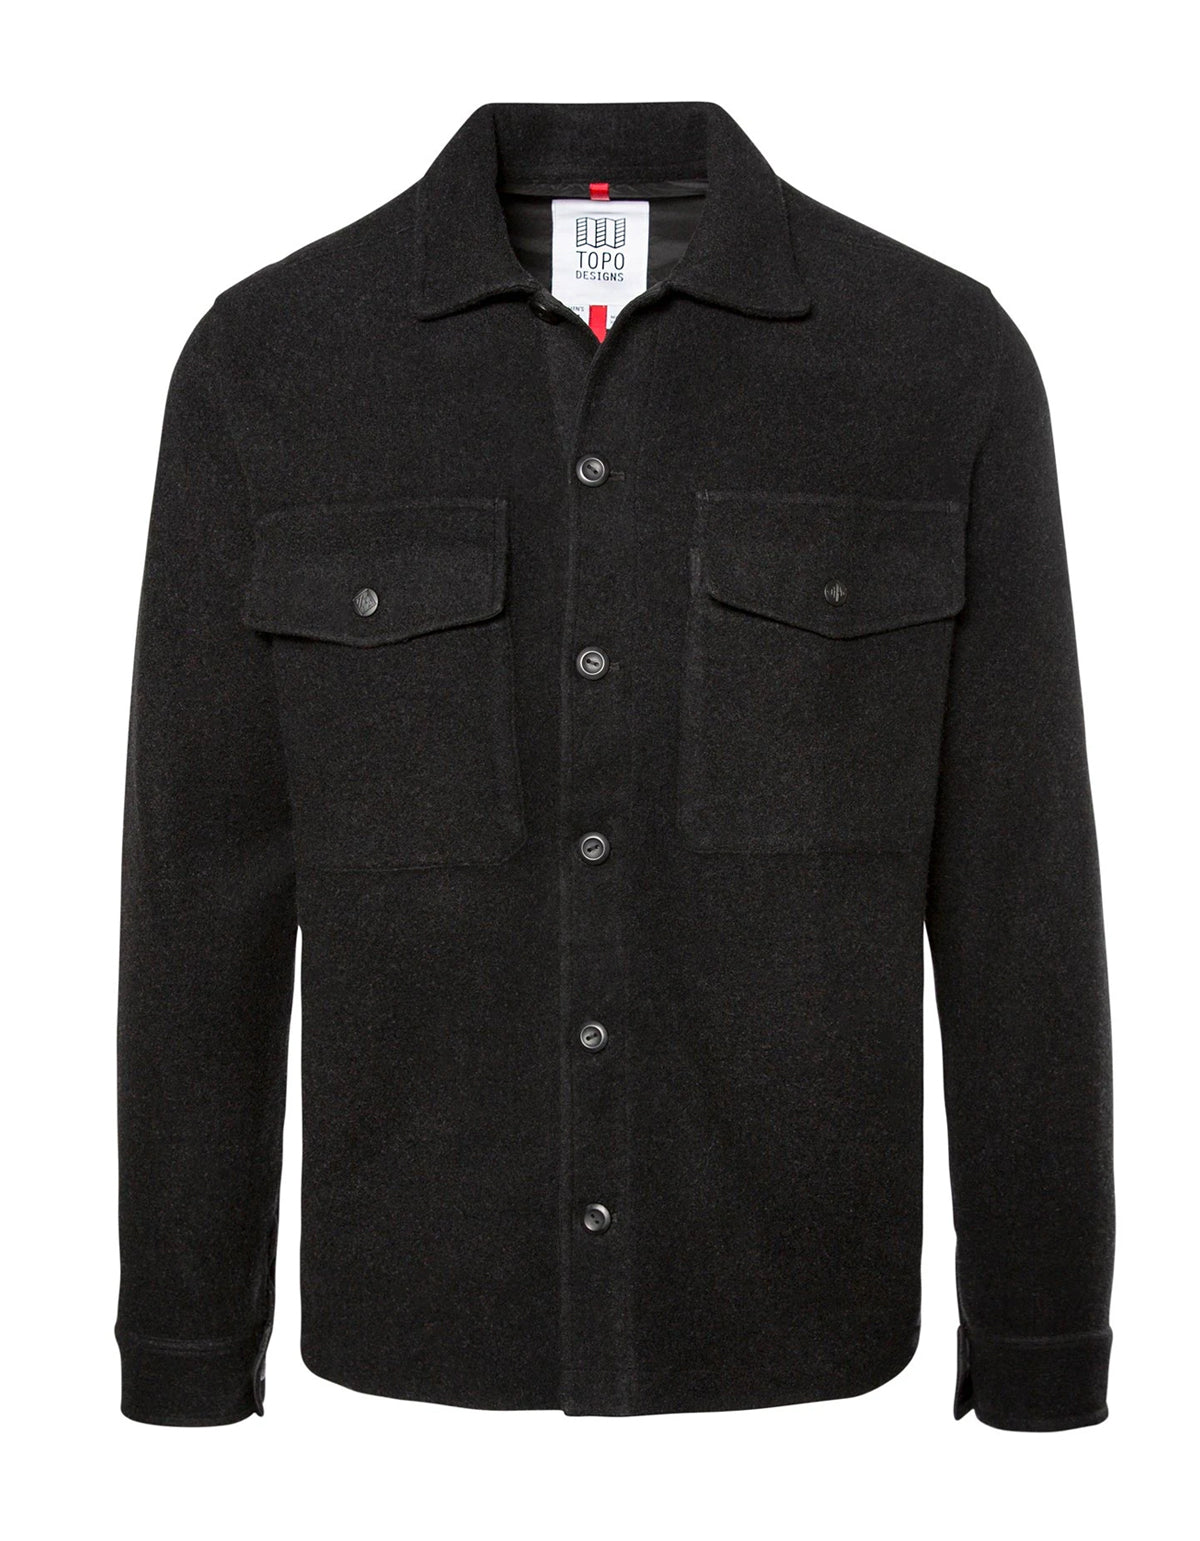 Topo Designs Men's Wool Shirt Black